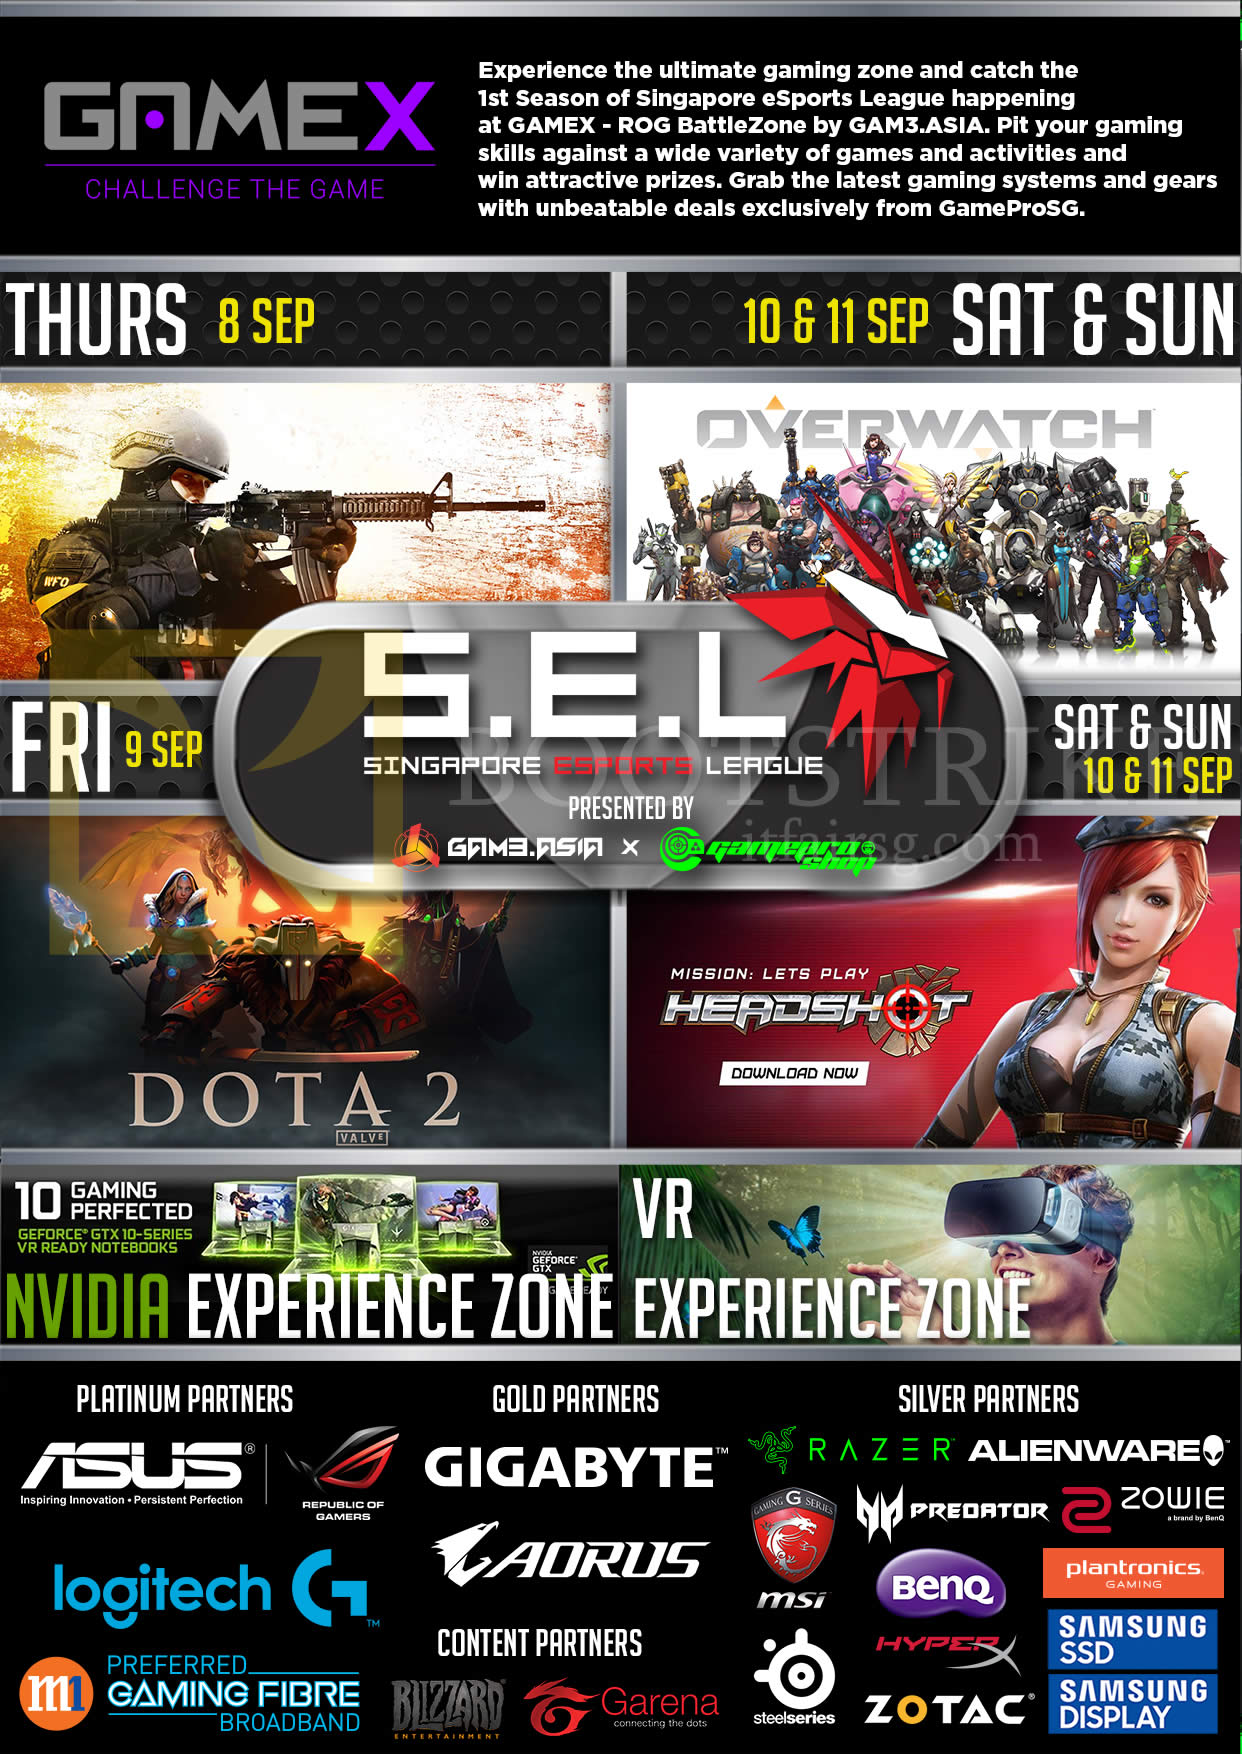 COMEX 2016 price list image brochure of GamePro Gaming Zone, ESports League, Games, Partners